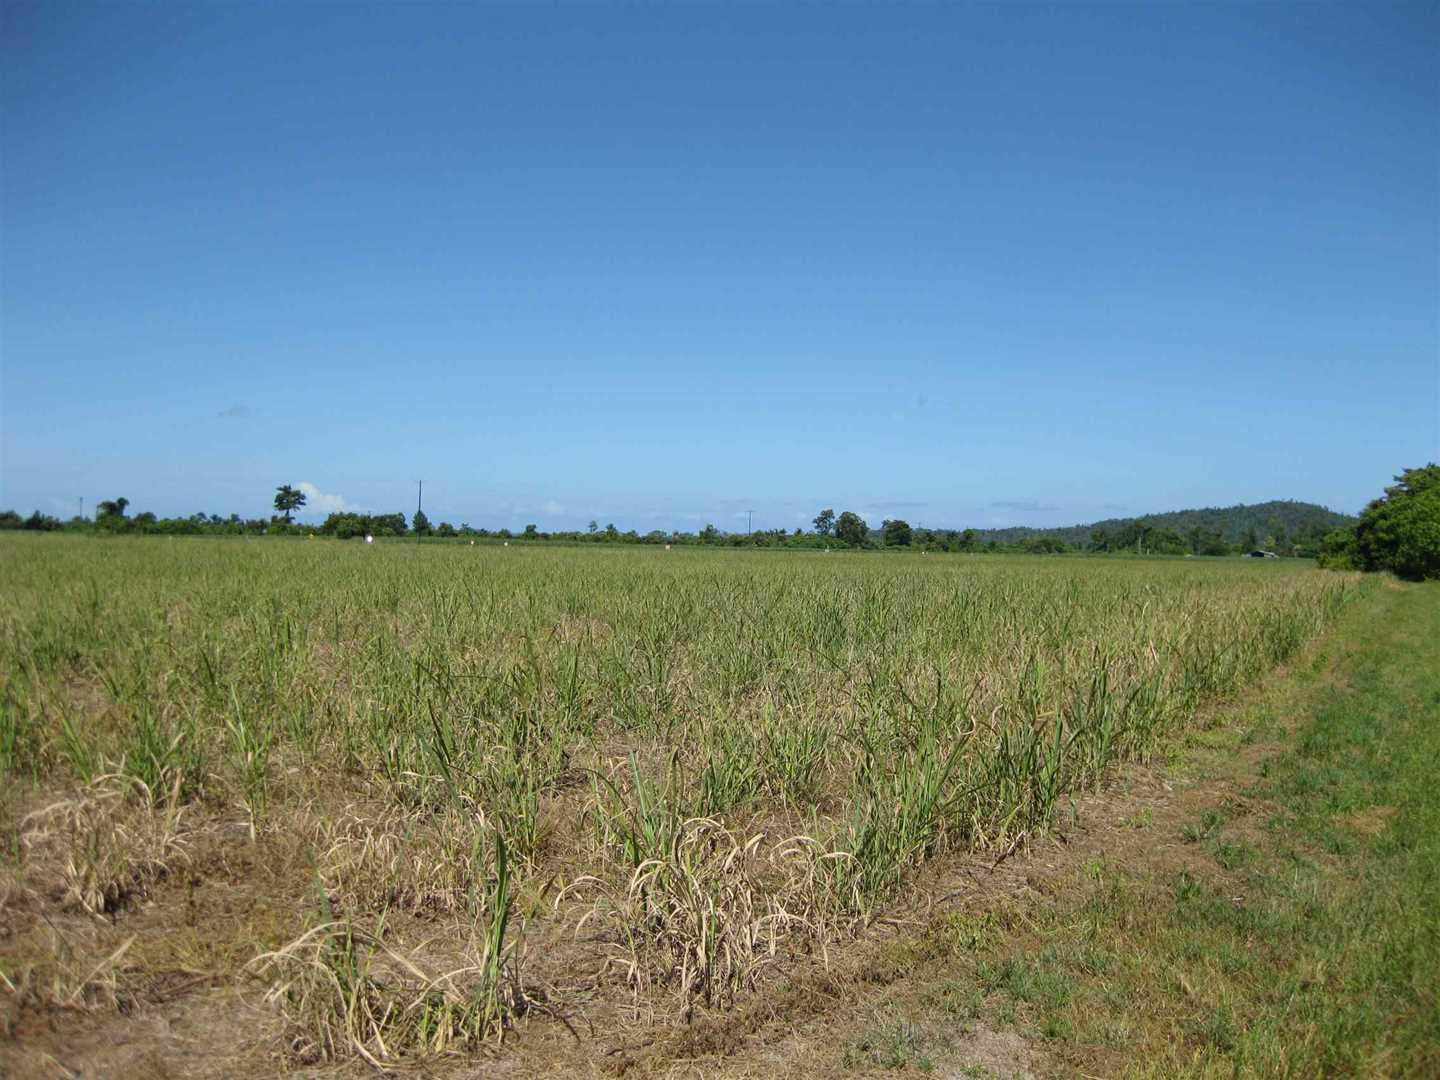 View of part of property showing part of fallow cane block